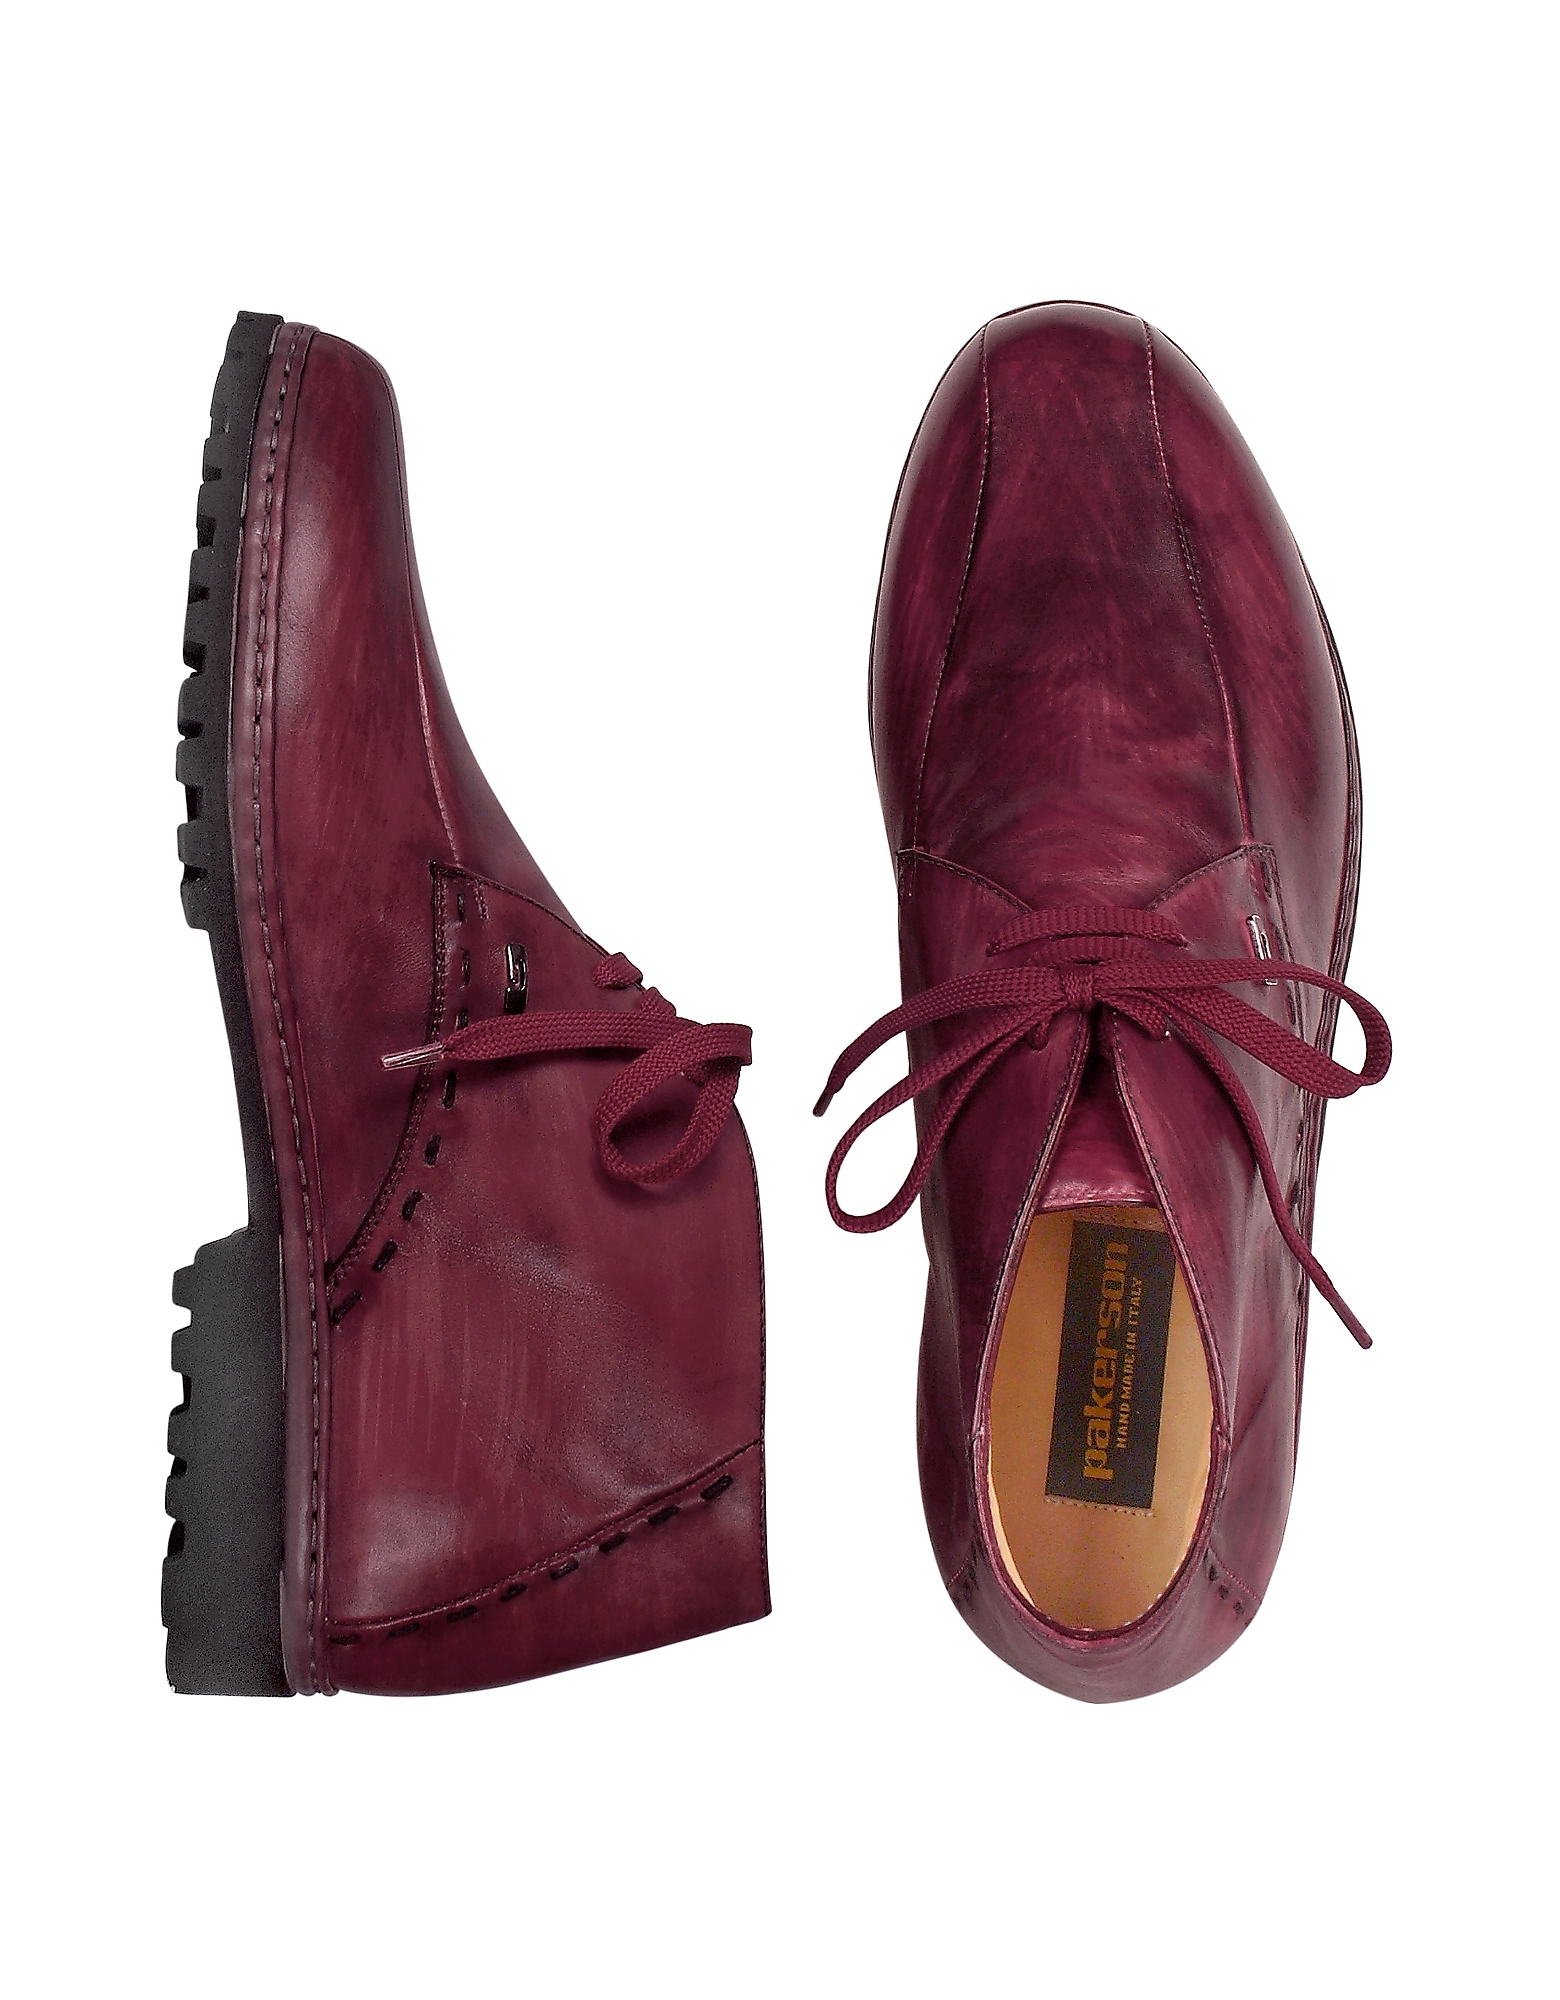 Pakerson Shoes, Wine Red Handmade Italian Leather Ankle Boots